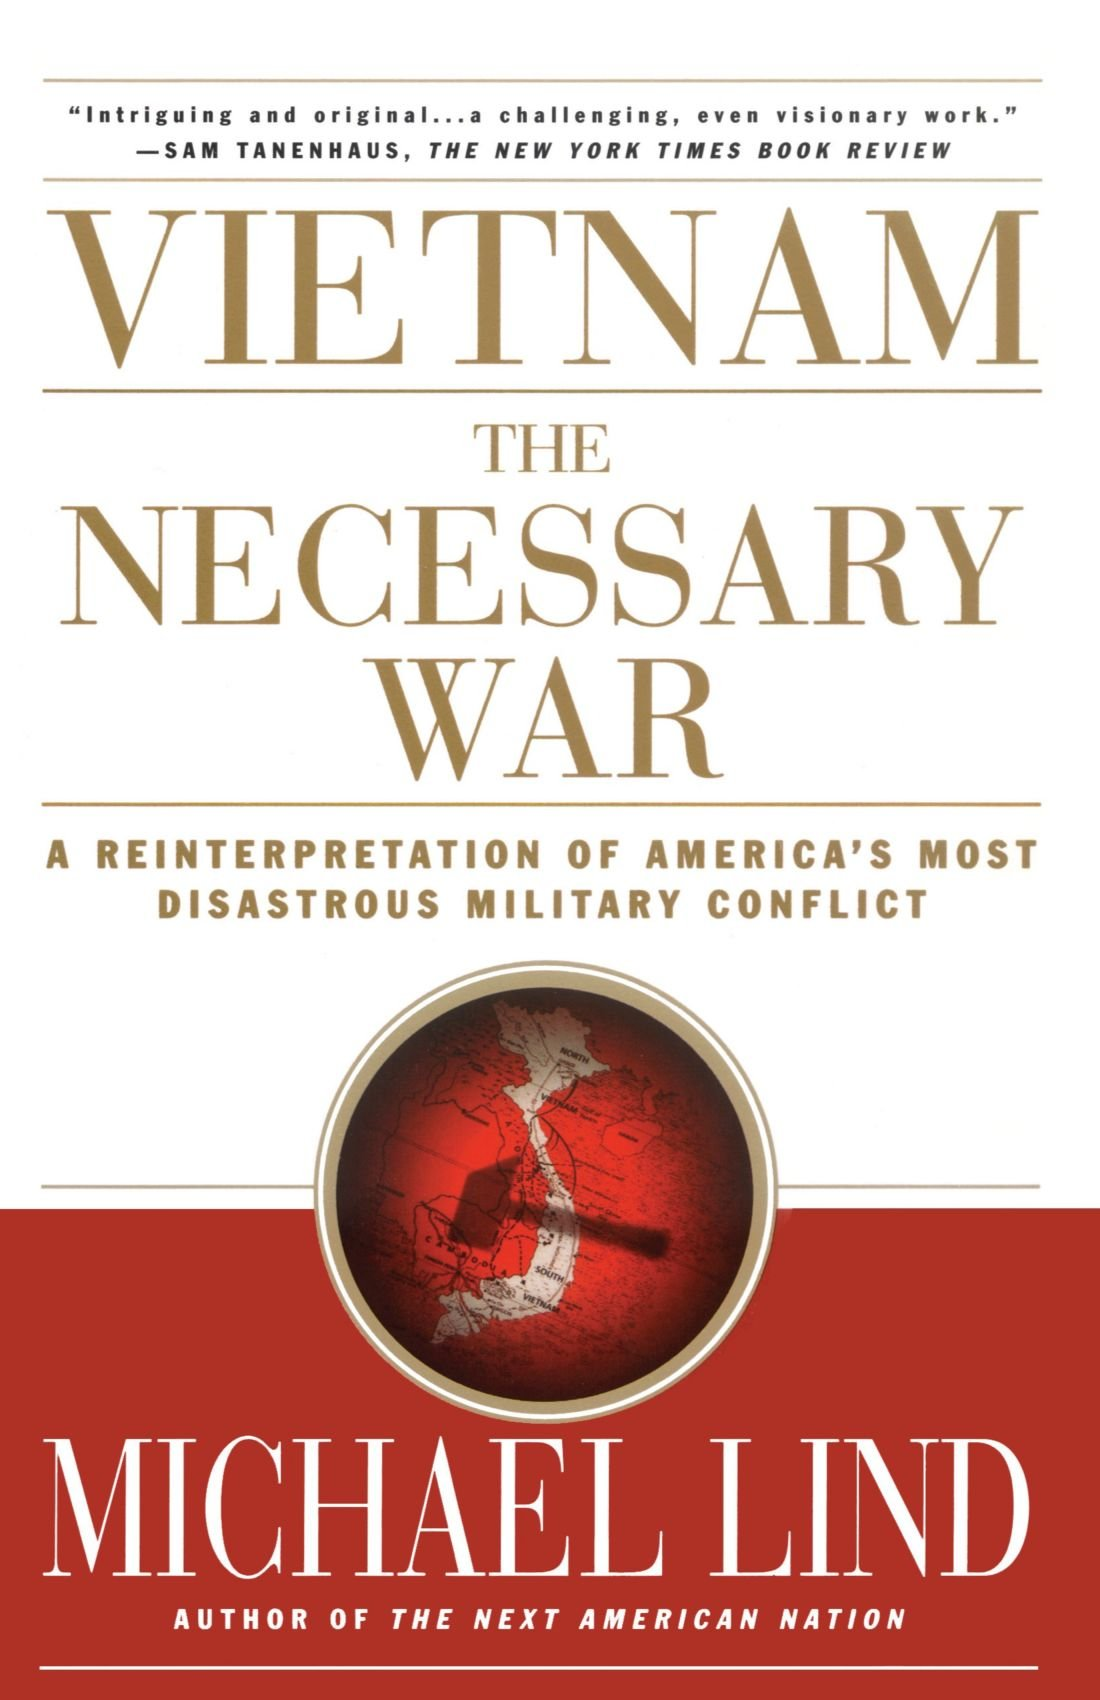 Vietnam: The Necessary War: A Reinterpretation of America's